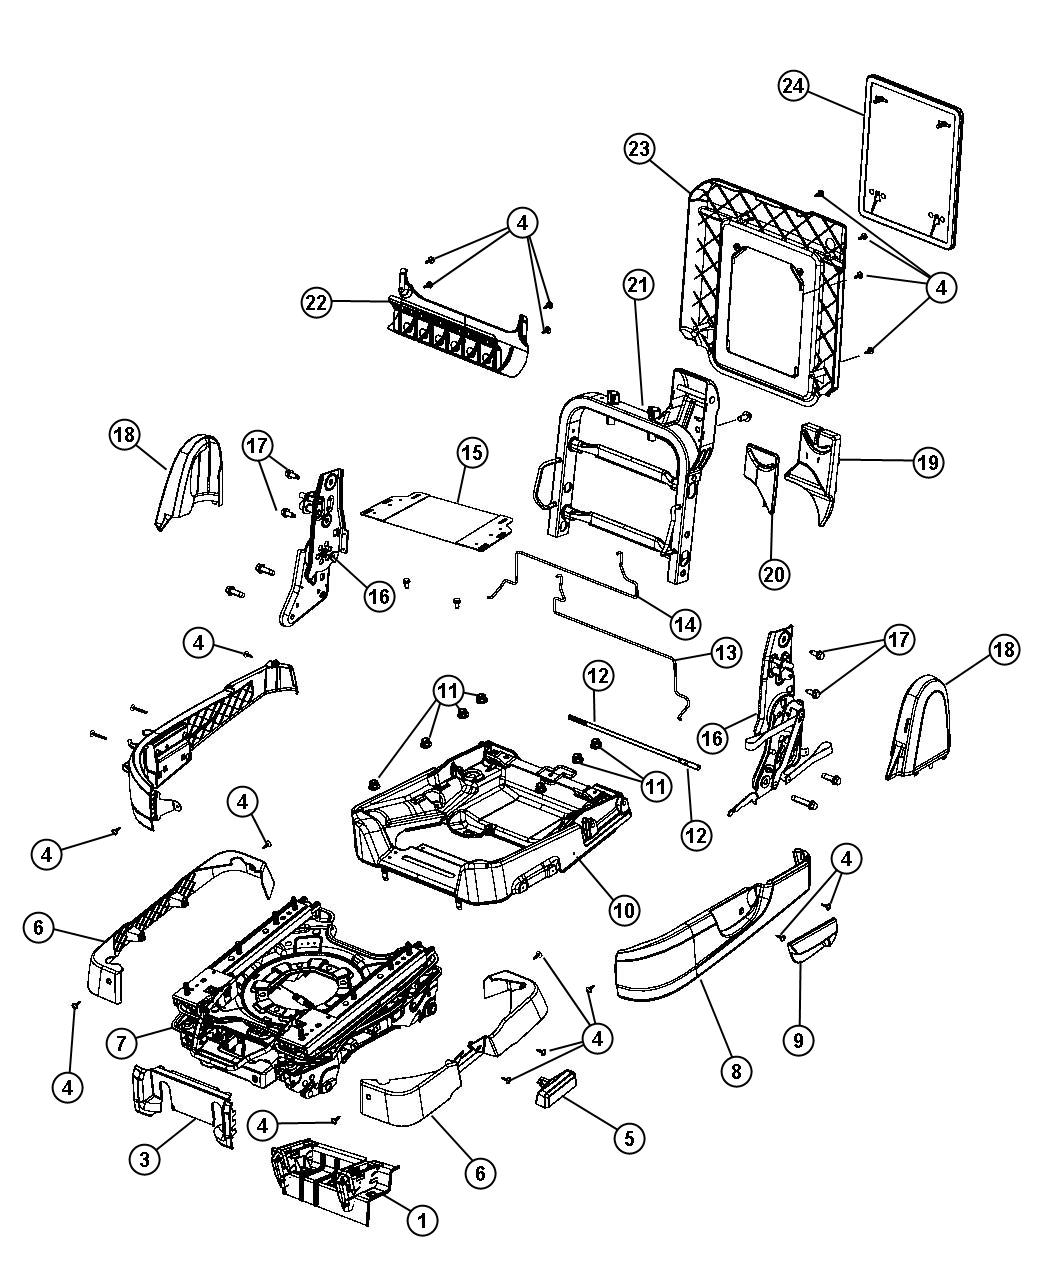 Dodge Grand Caravan Bracket Seat Without Heated Second